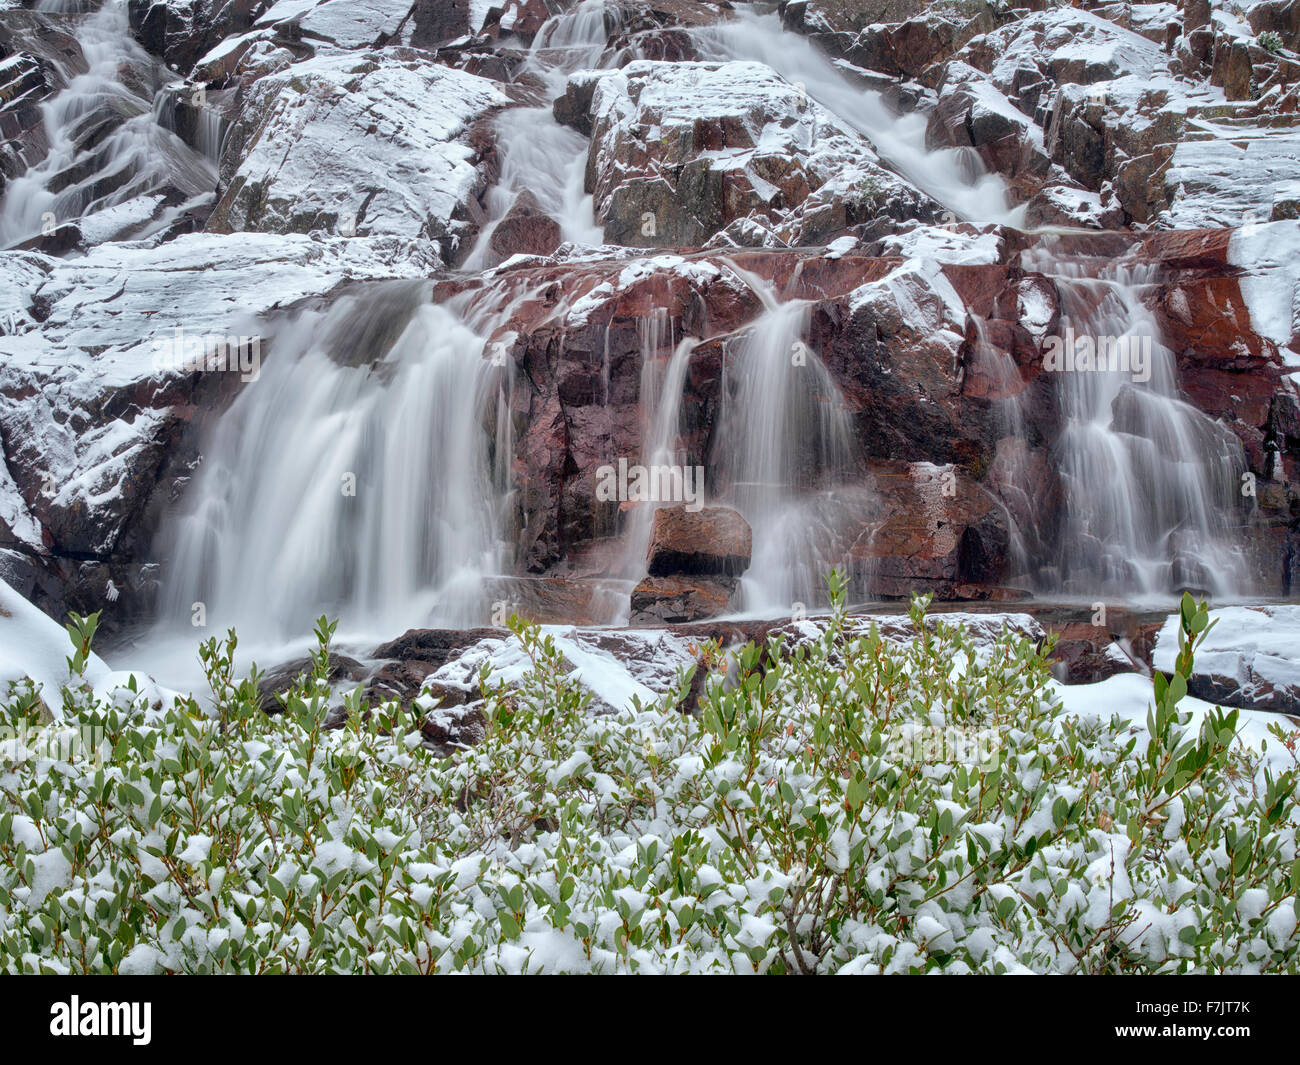 Glen Alpine Falls minutes after fresh snwfall. Lake Tahoe, California - Stock Image